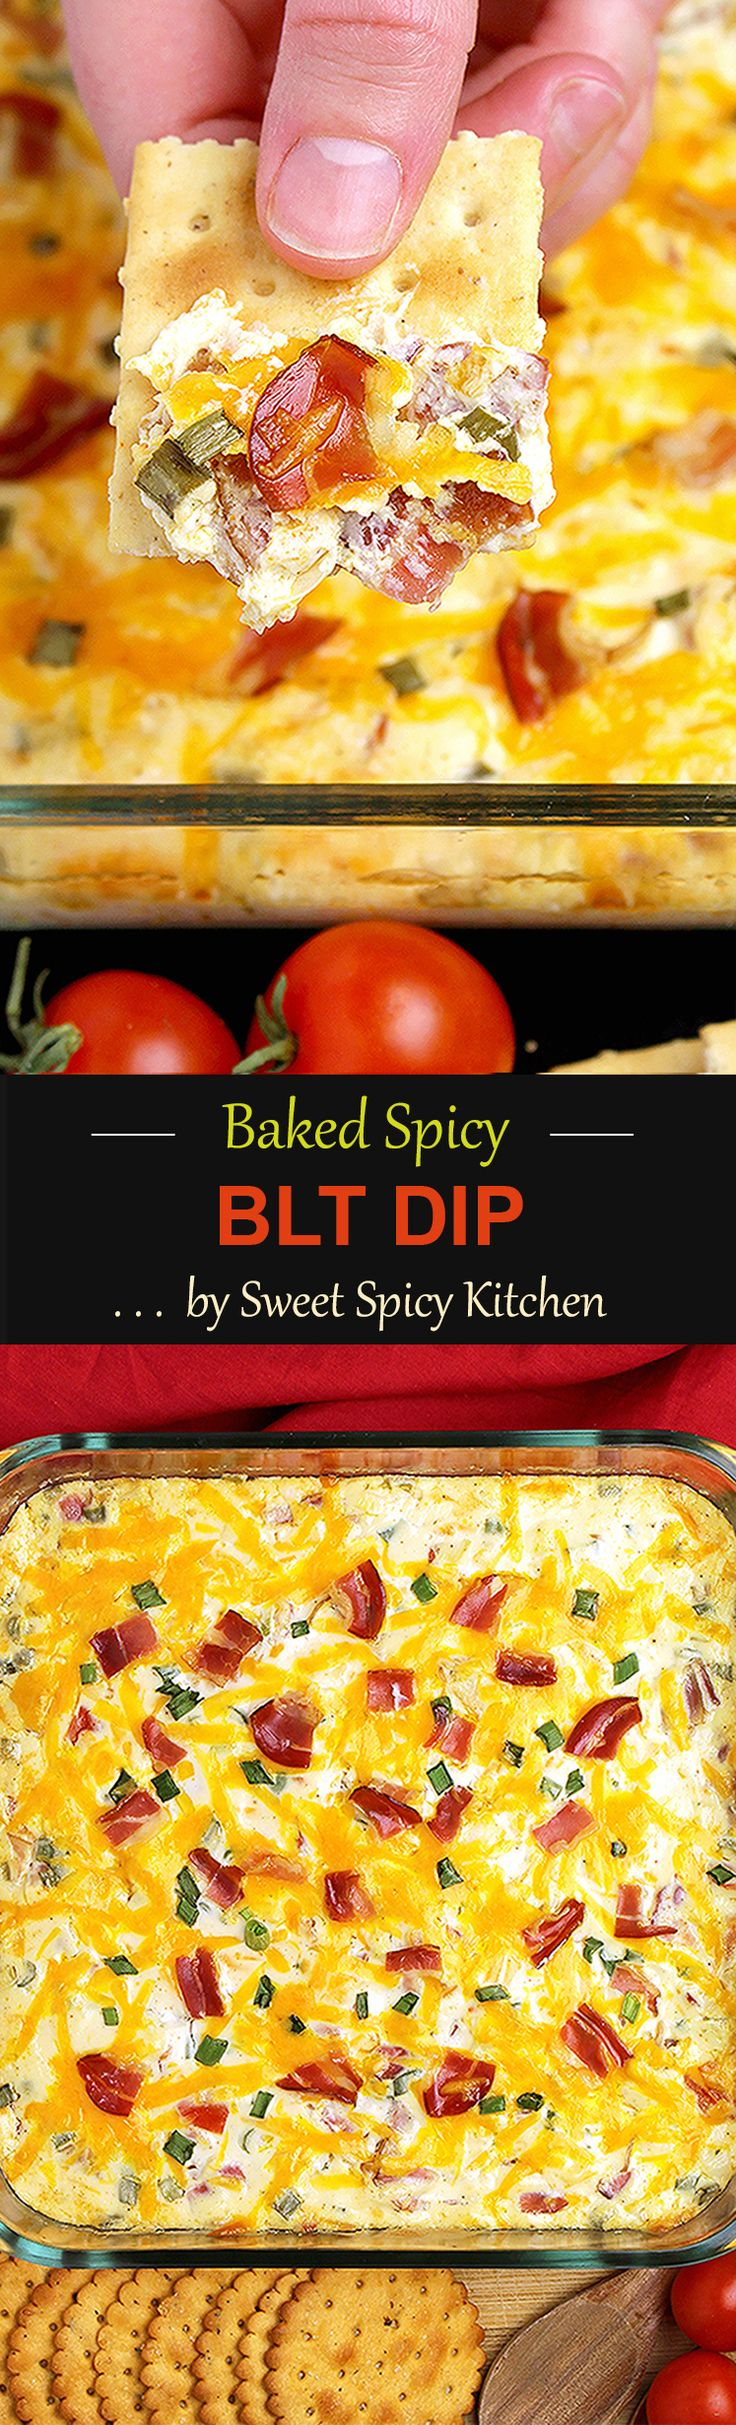 Baked Spicy BLT Dip Recipe